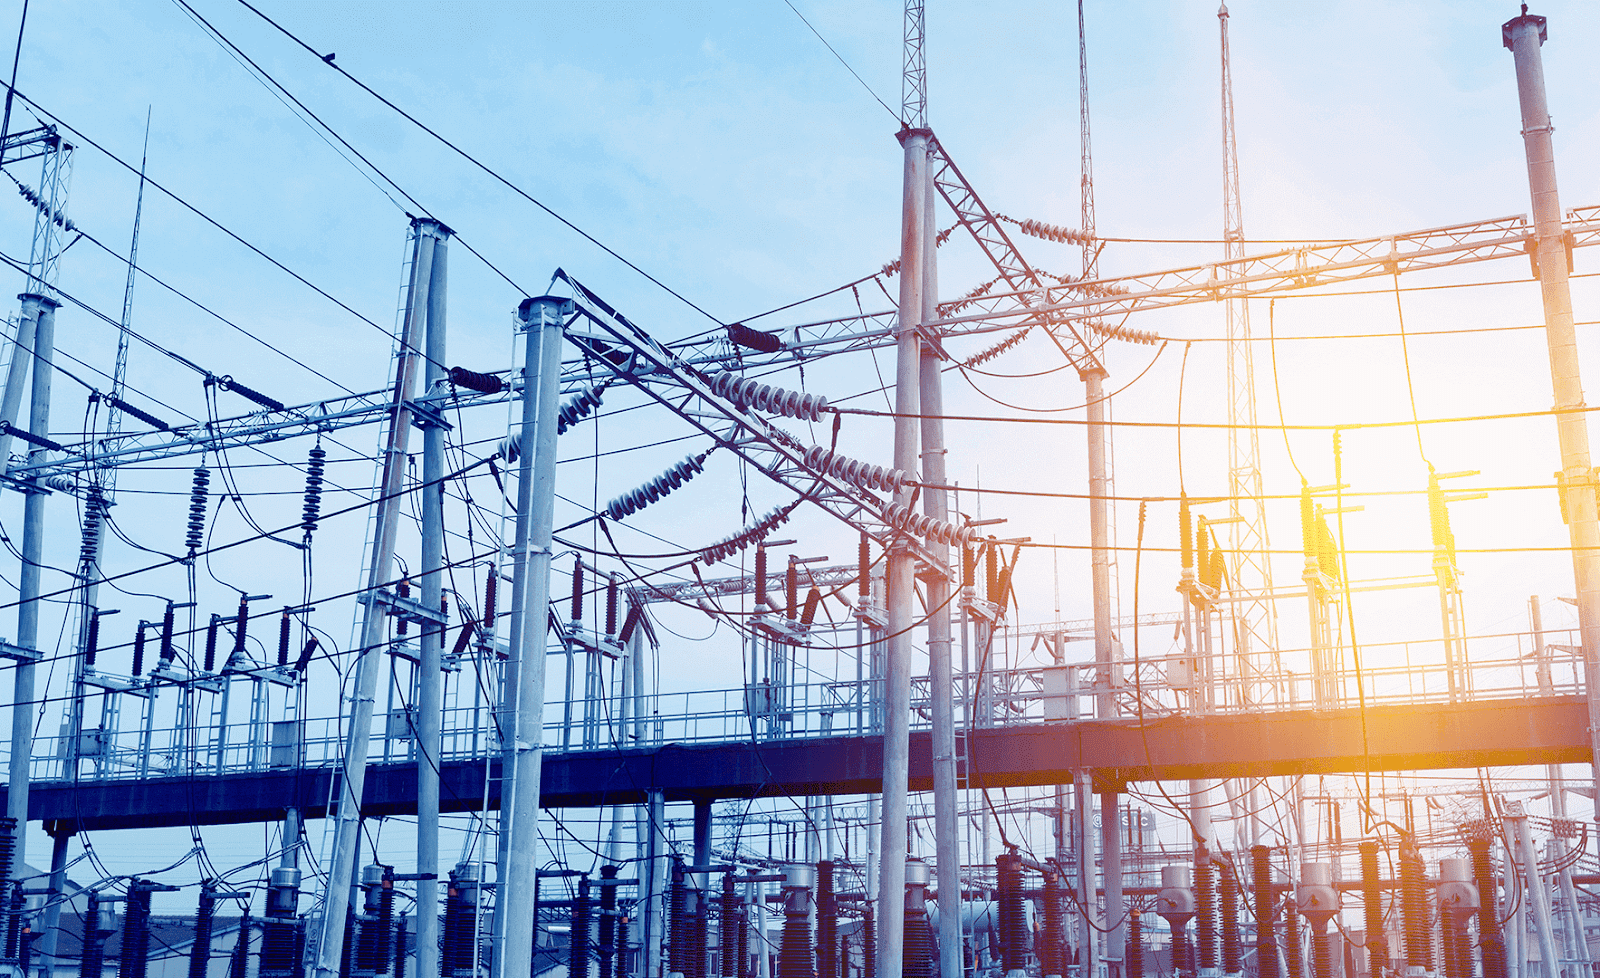 CEA drafts Power Distribution Plan 2019 for uninterrupted power for all